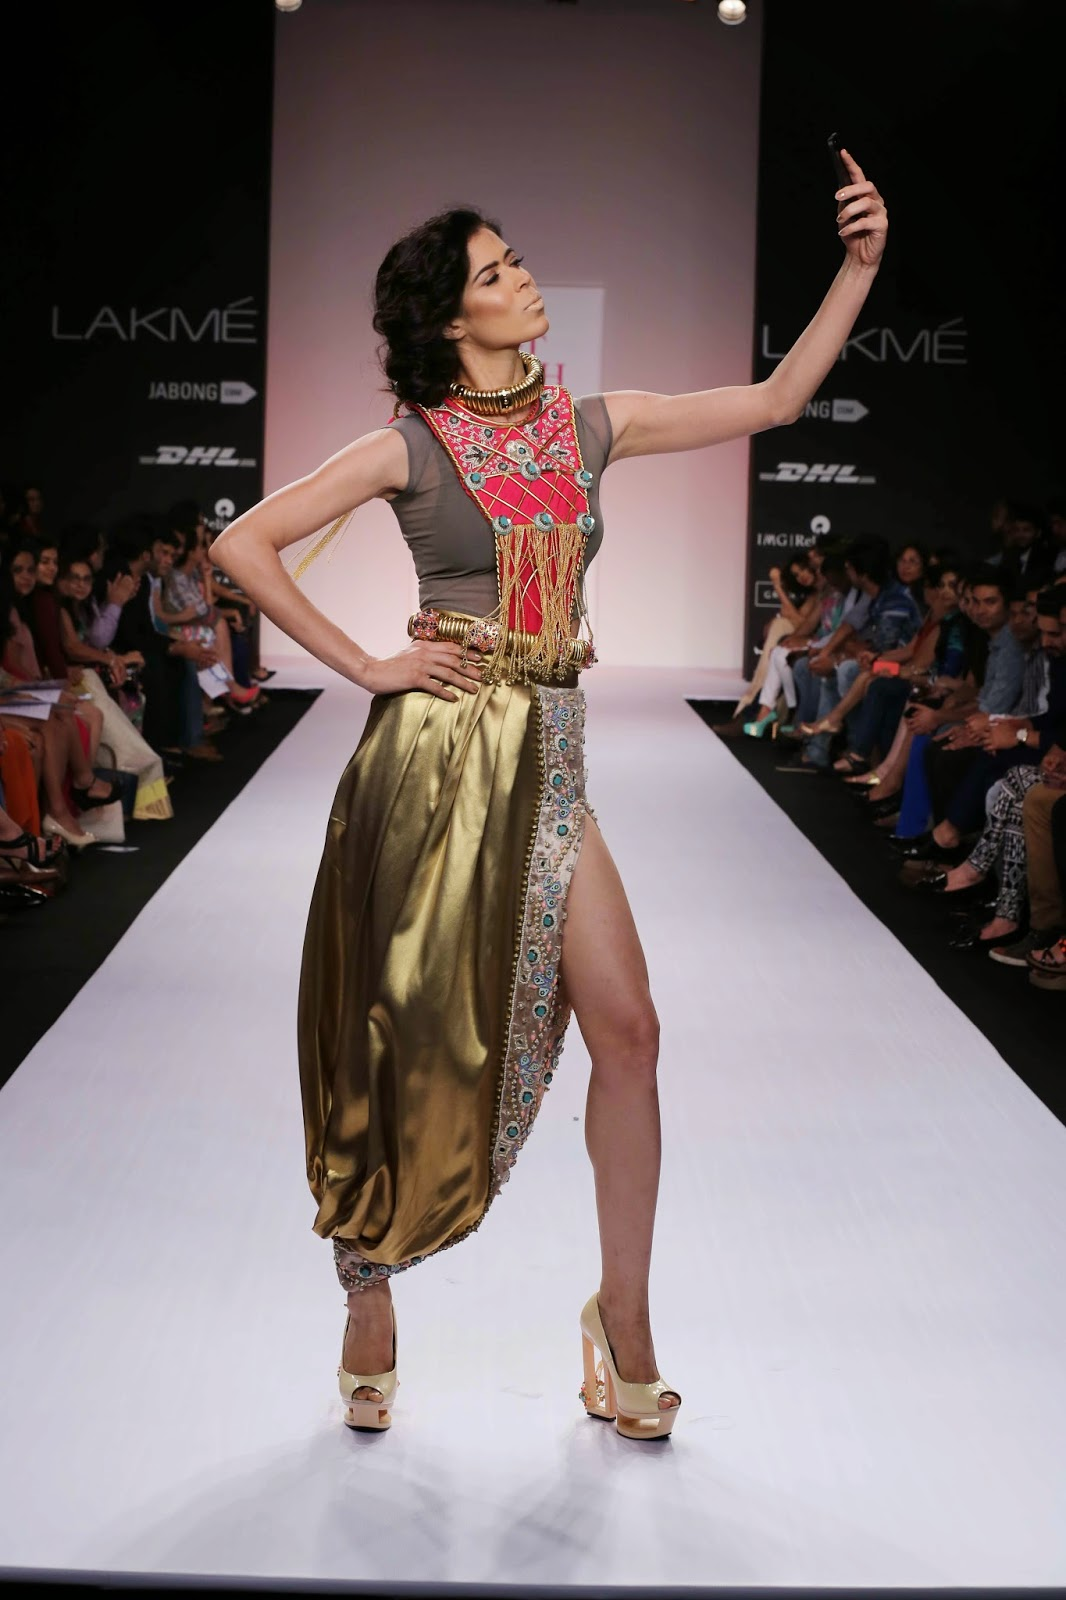 """Making her debut at Lakmé Fashion Week Summer/Resort 2014 Shubhika Davda presented her collection called """"ROAR"""" under her label """"Papa don't Preach"""". The spotlight was on intricate hand crafted trendy accessories that recreated traditional Indian touches with a twist."""